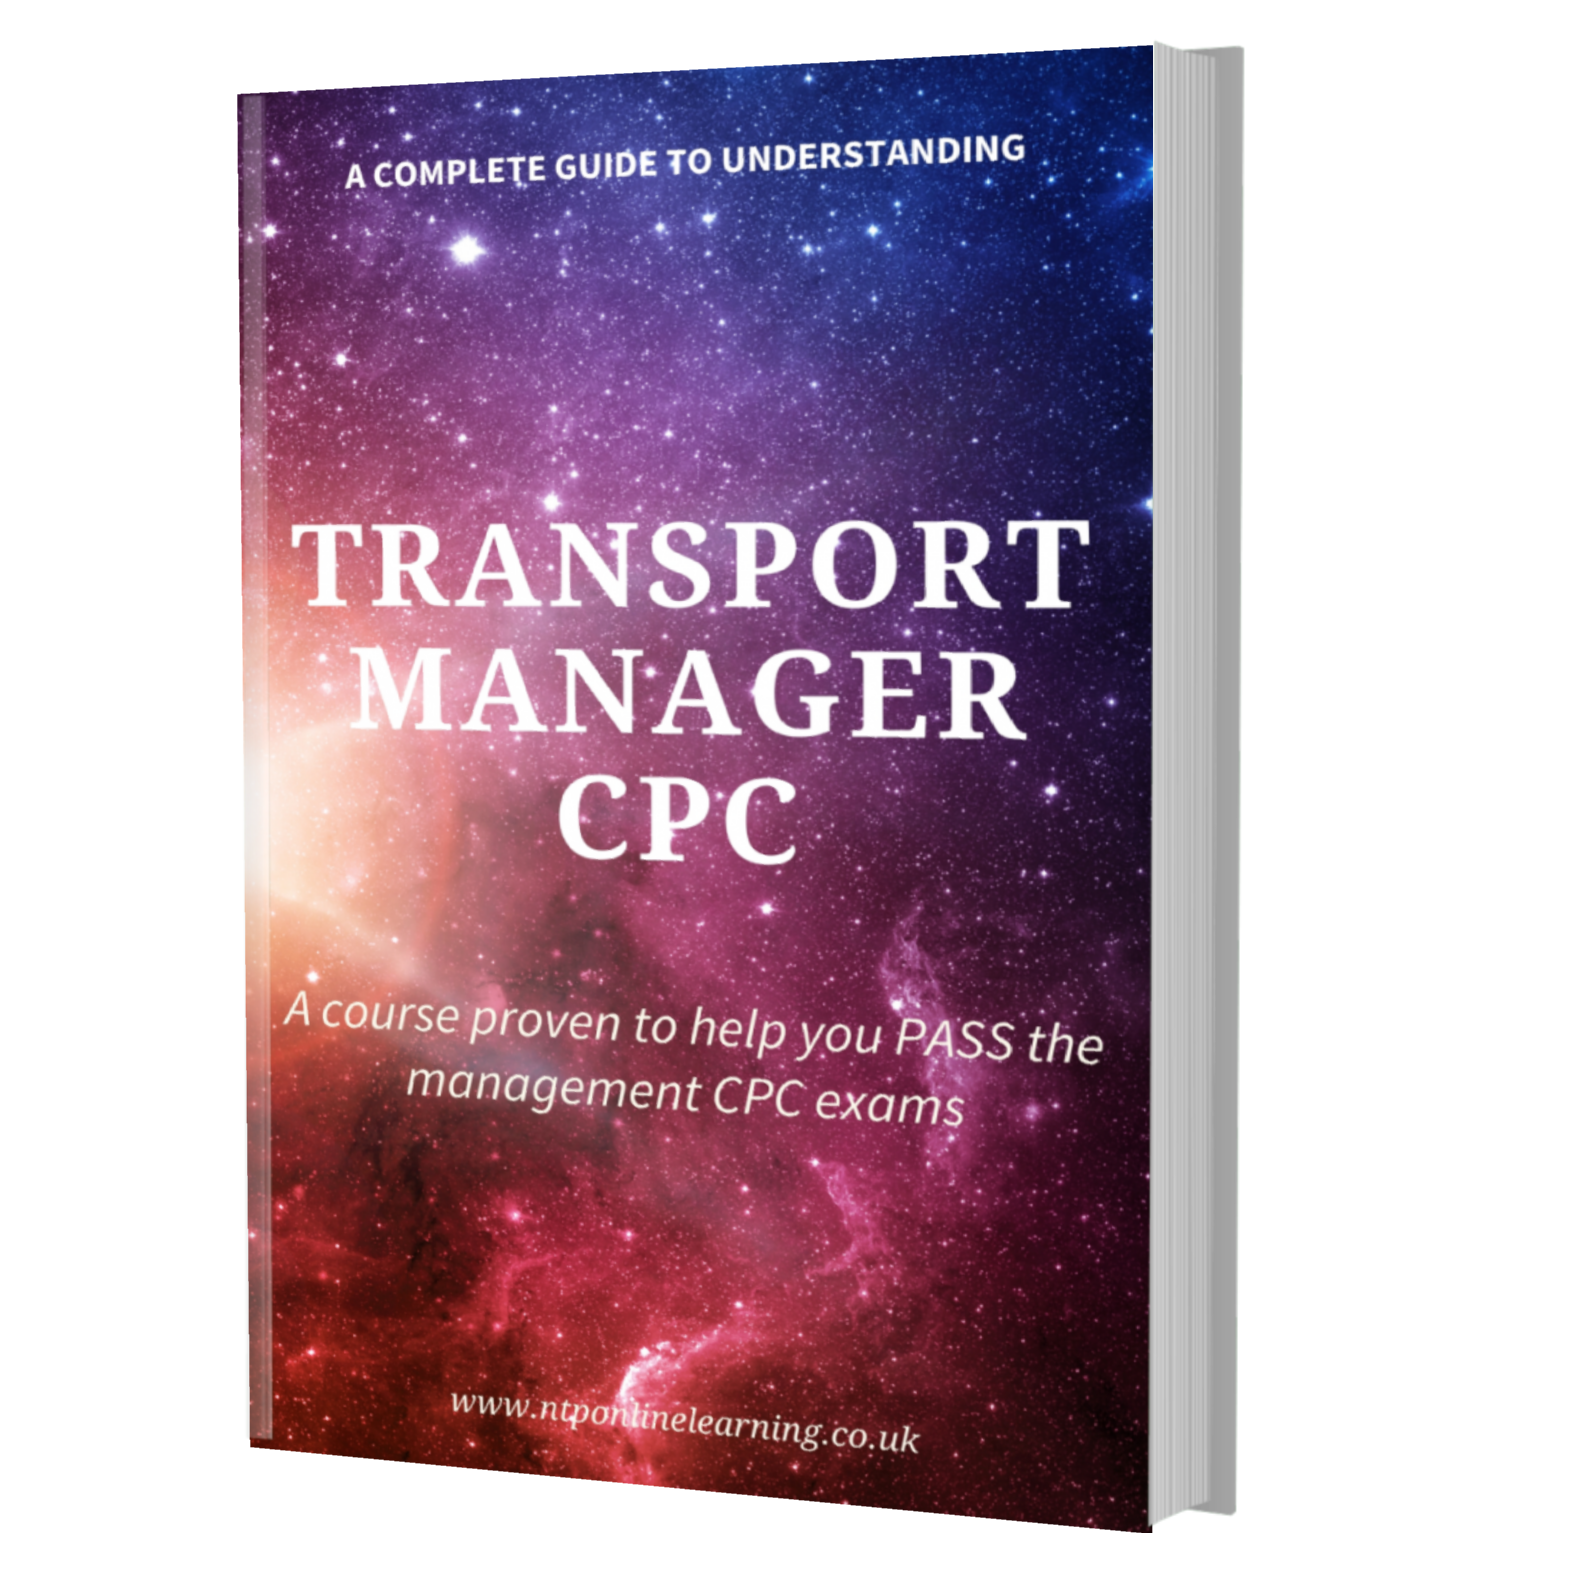 Your free guide to transport manager cpc